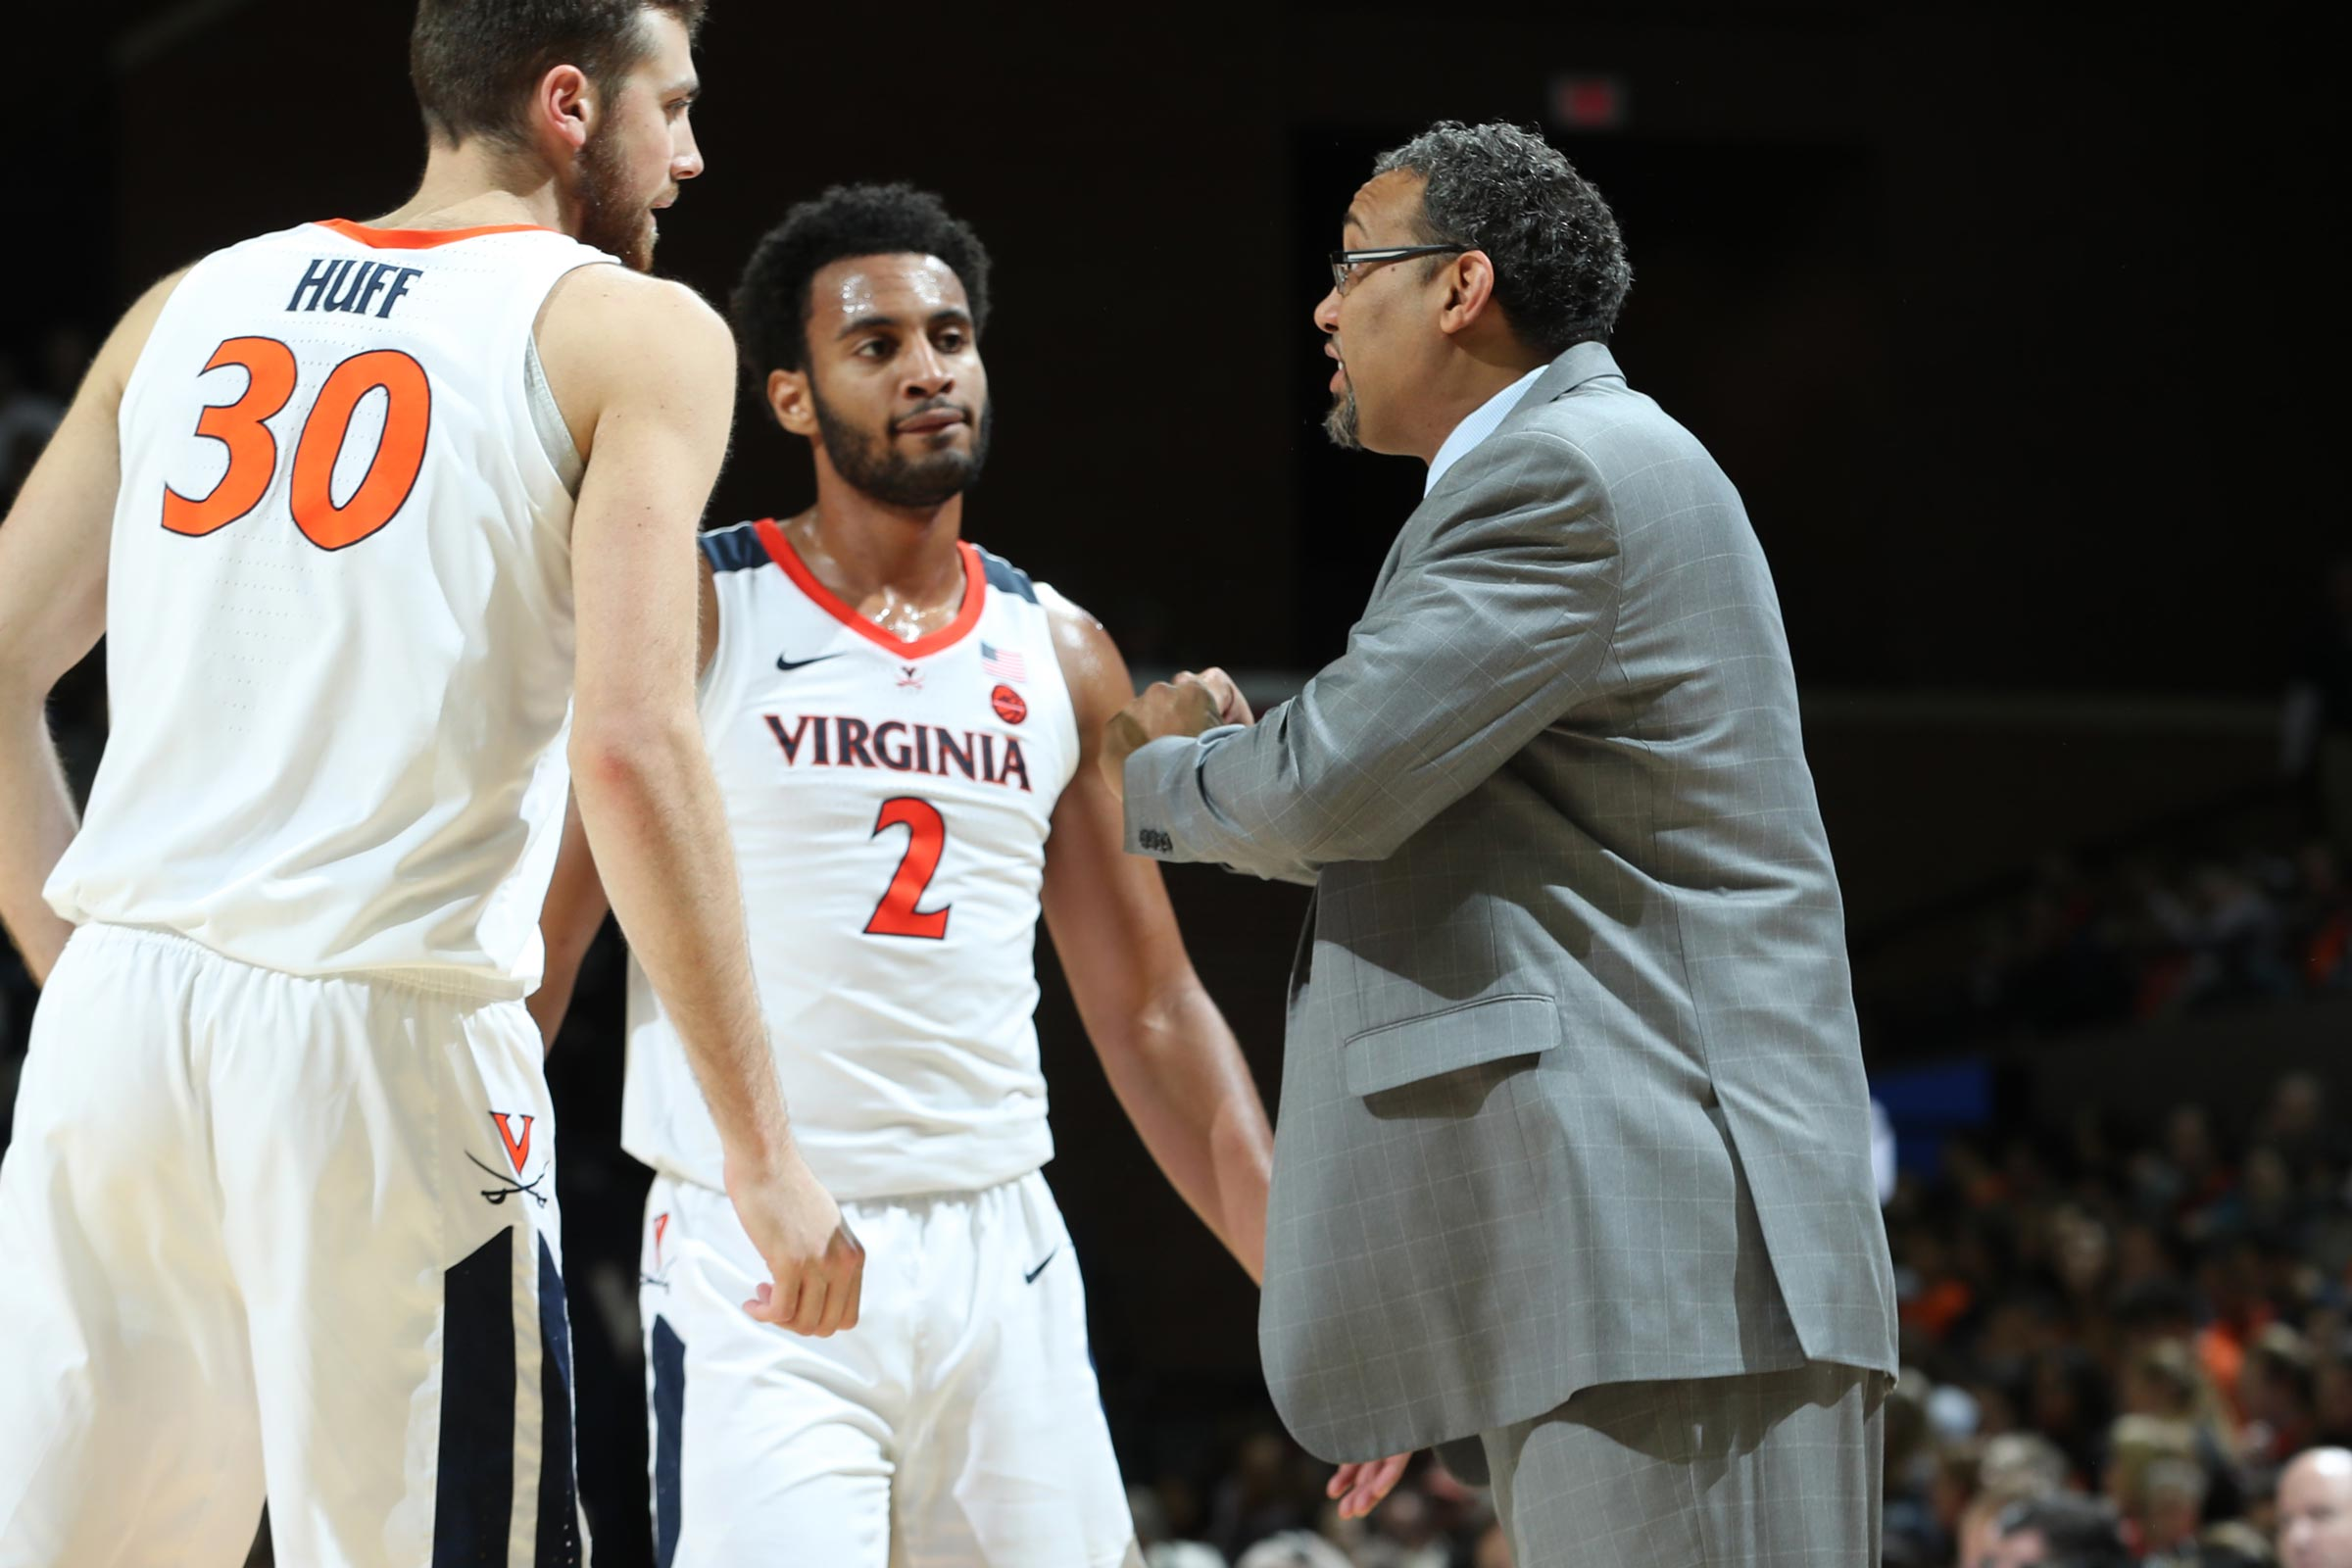 UVA assistant coach Jason Williford said Brogdon's work ethic is second to none.